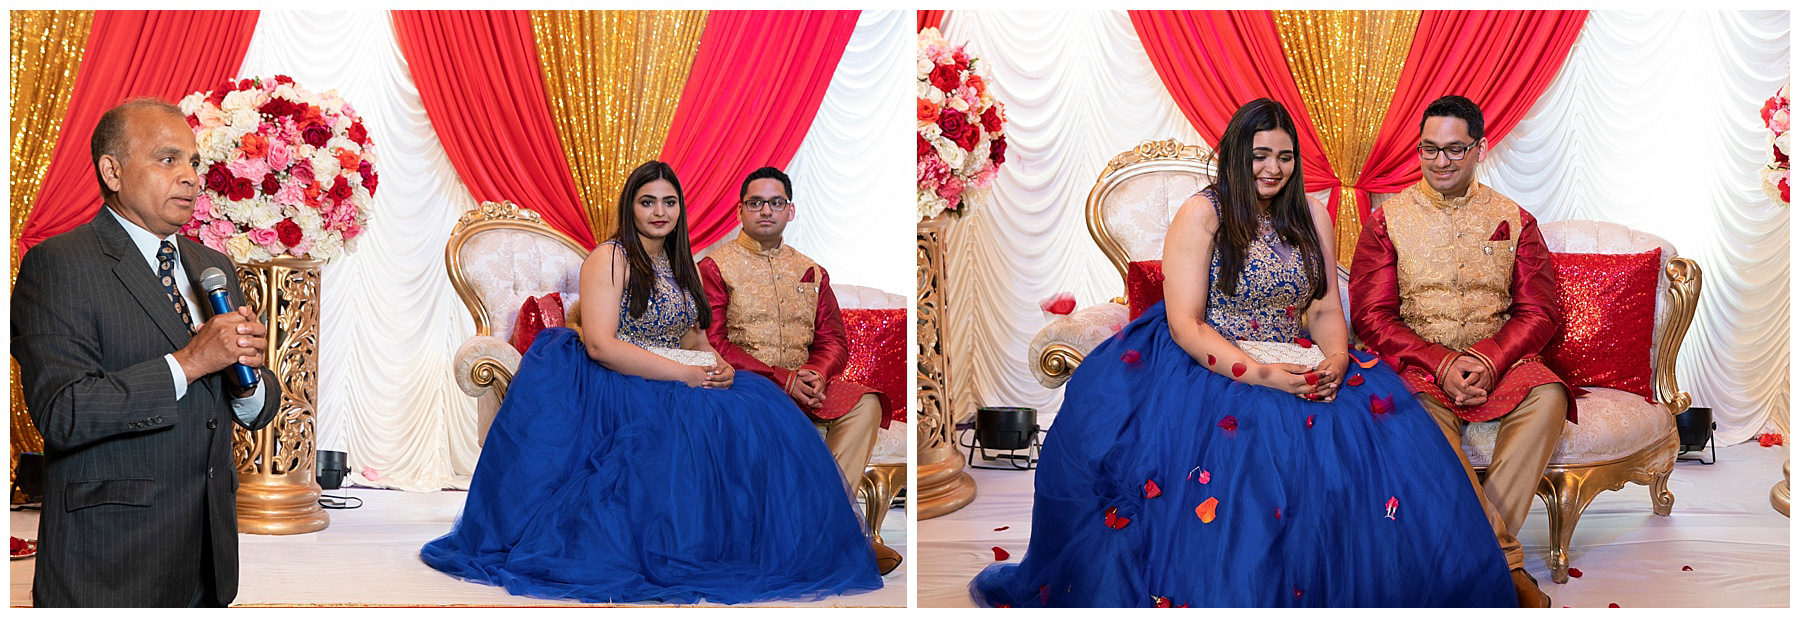 royal-alberts-palace-fords-nj-engagement-vidushi-ankush-18.jpg